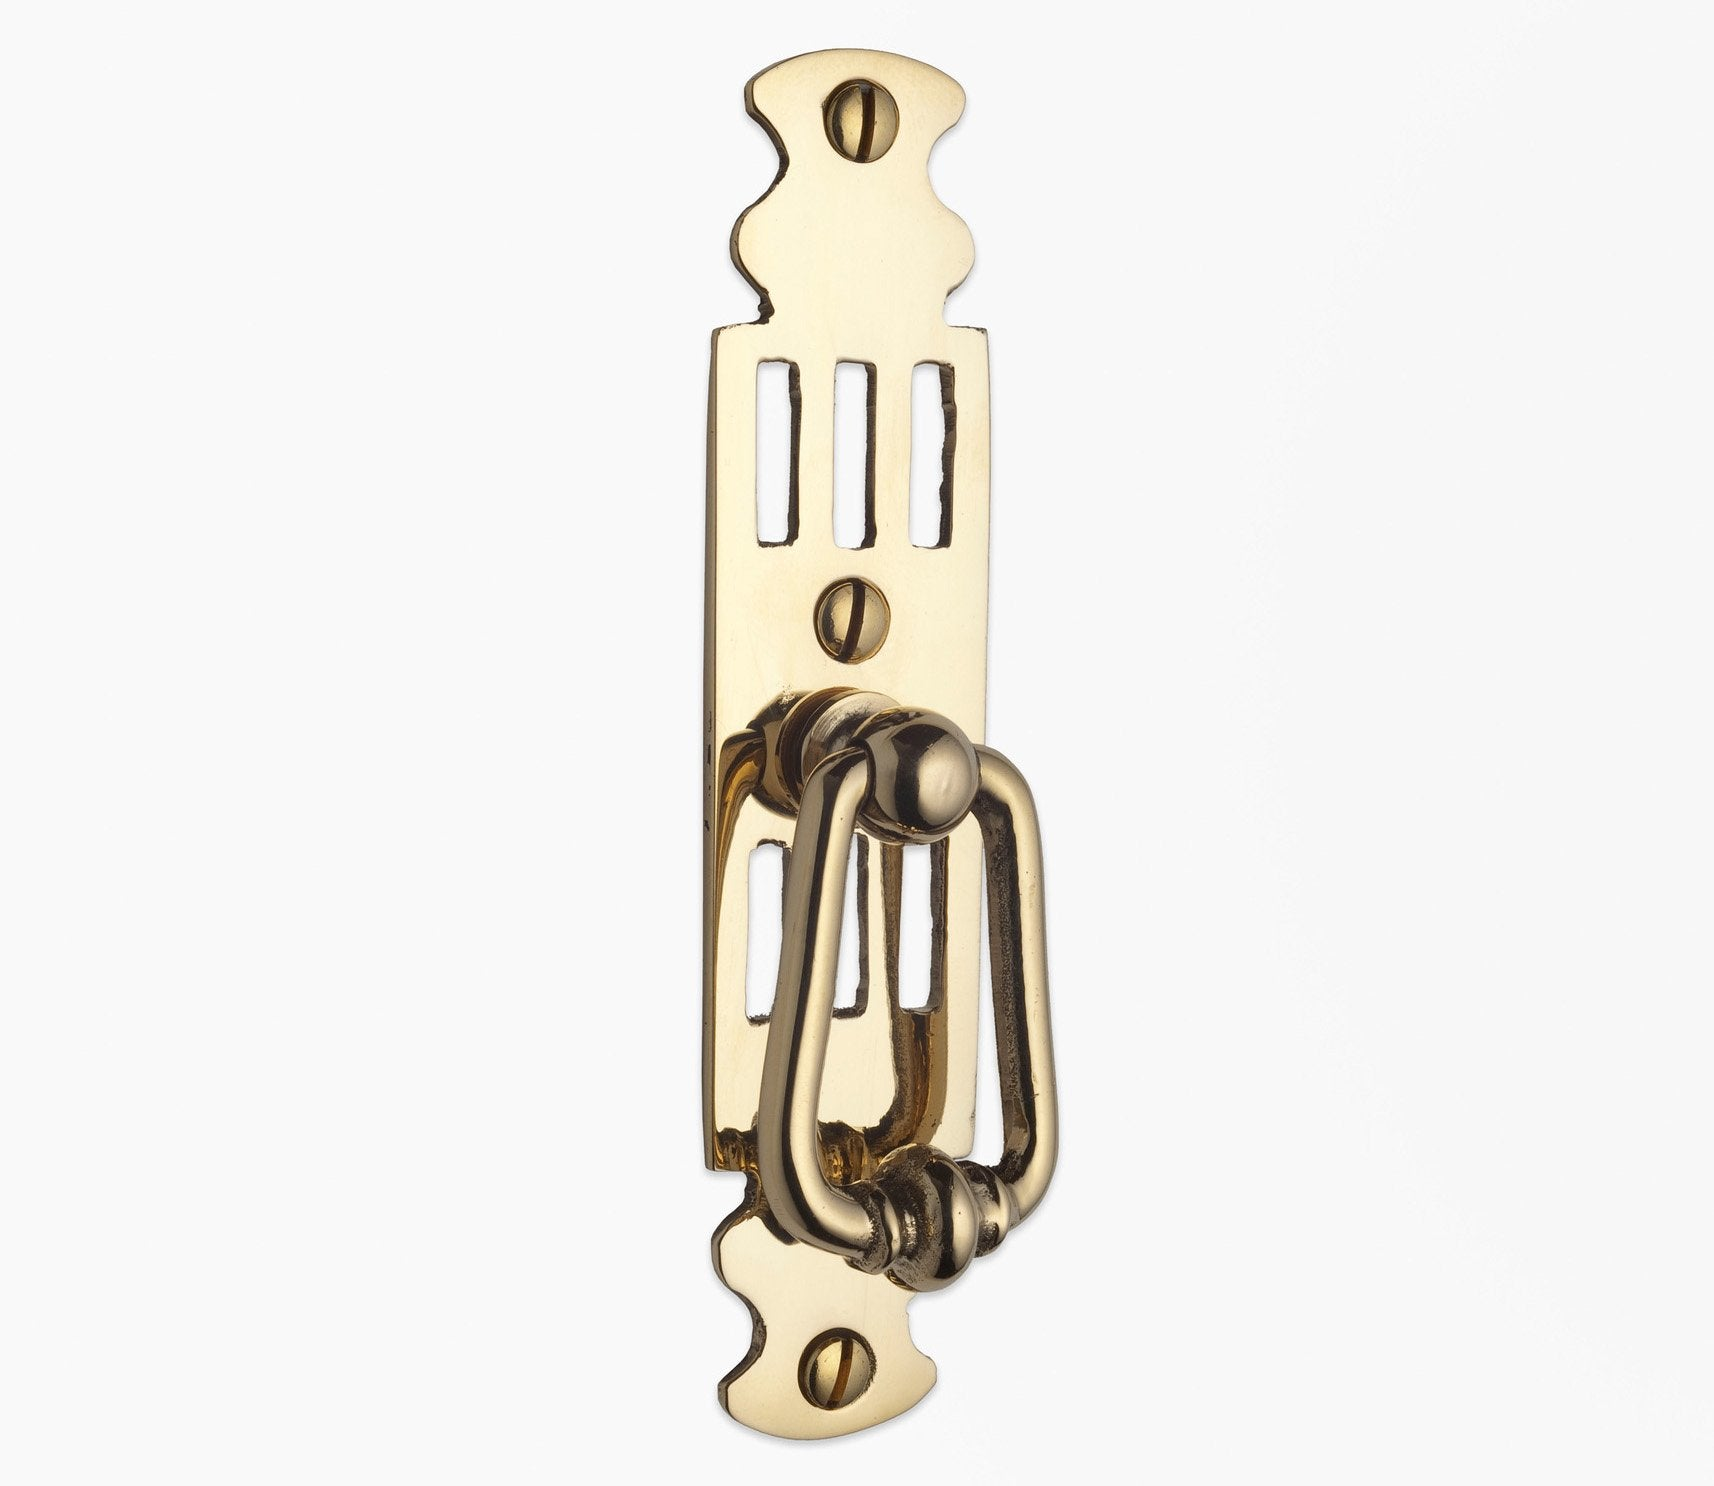 Bail Pull 032 Product Image 1